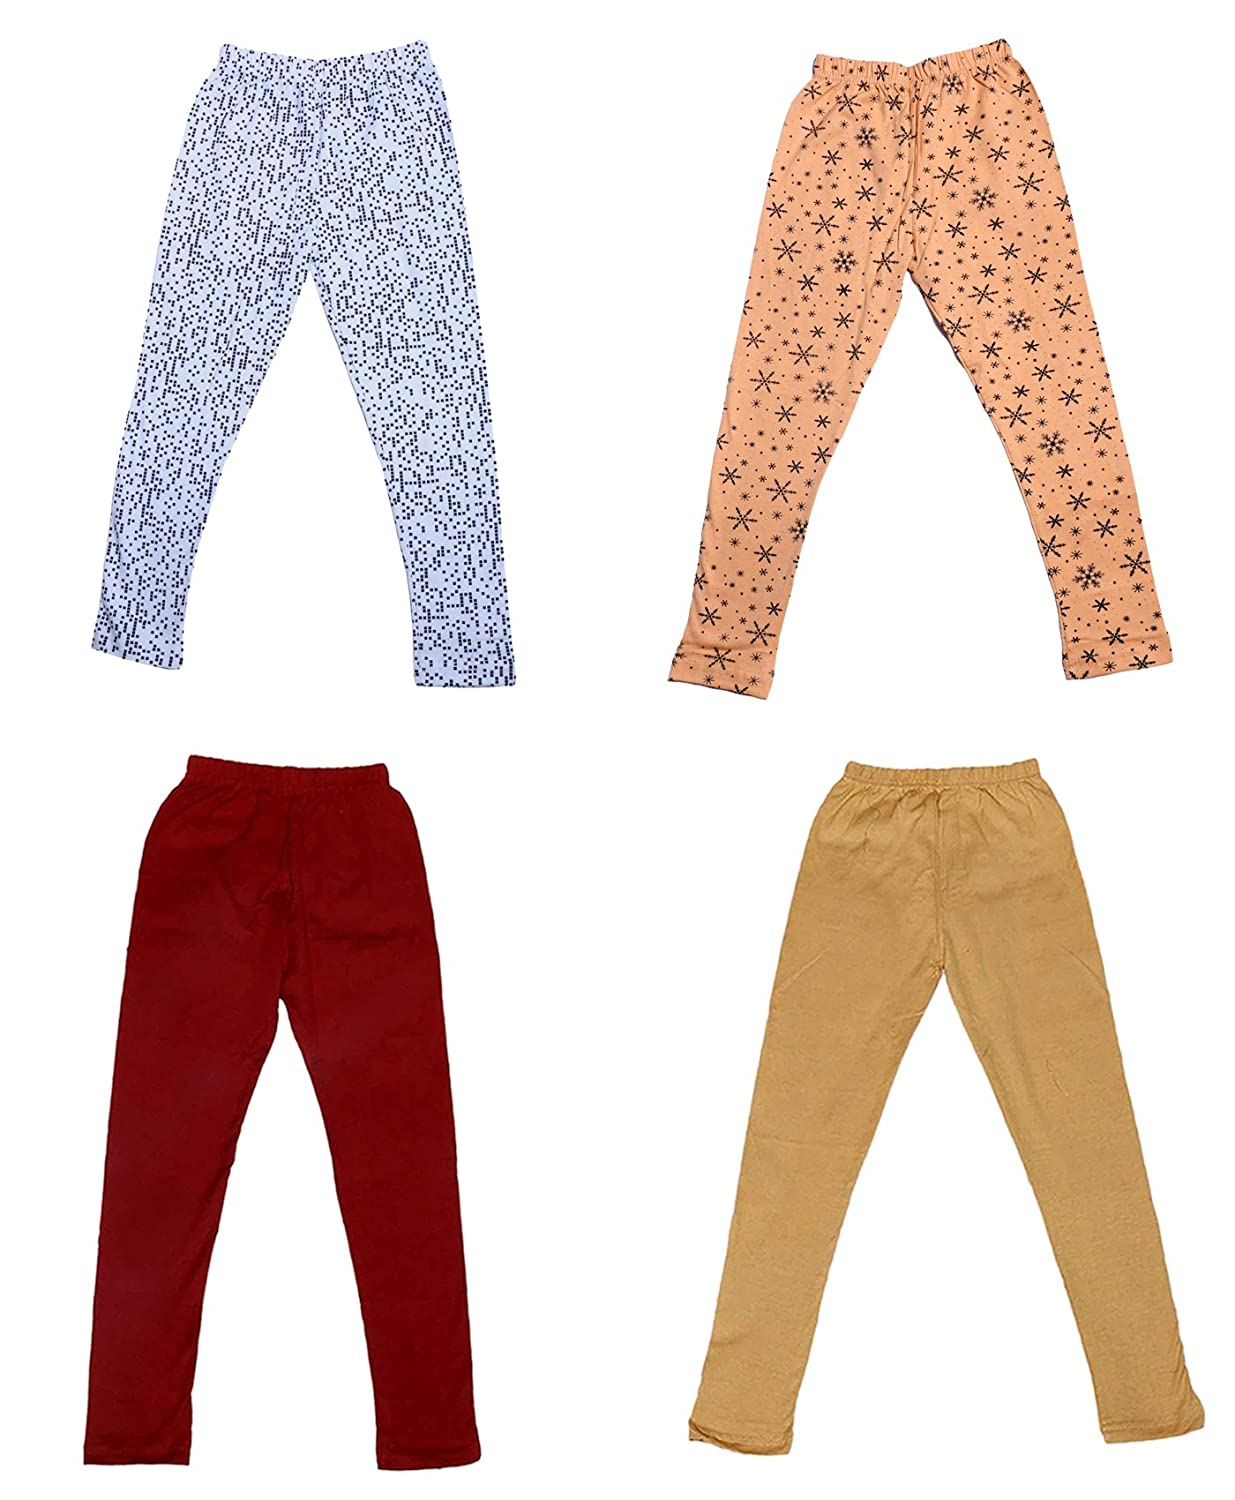 Indistar Girls Cotton Printed Leggings Pants Pack of 2